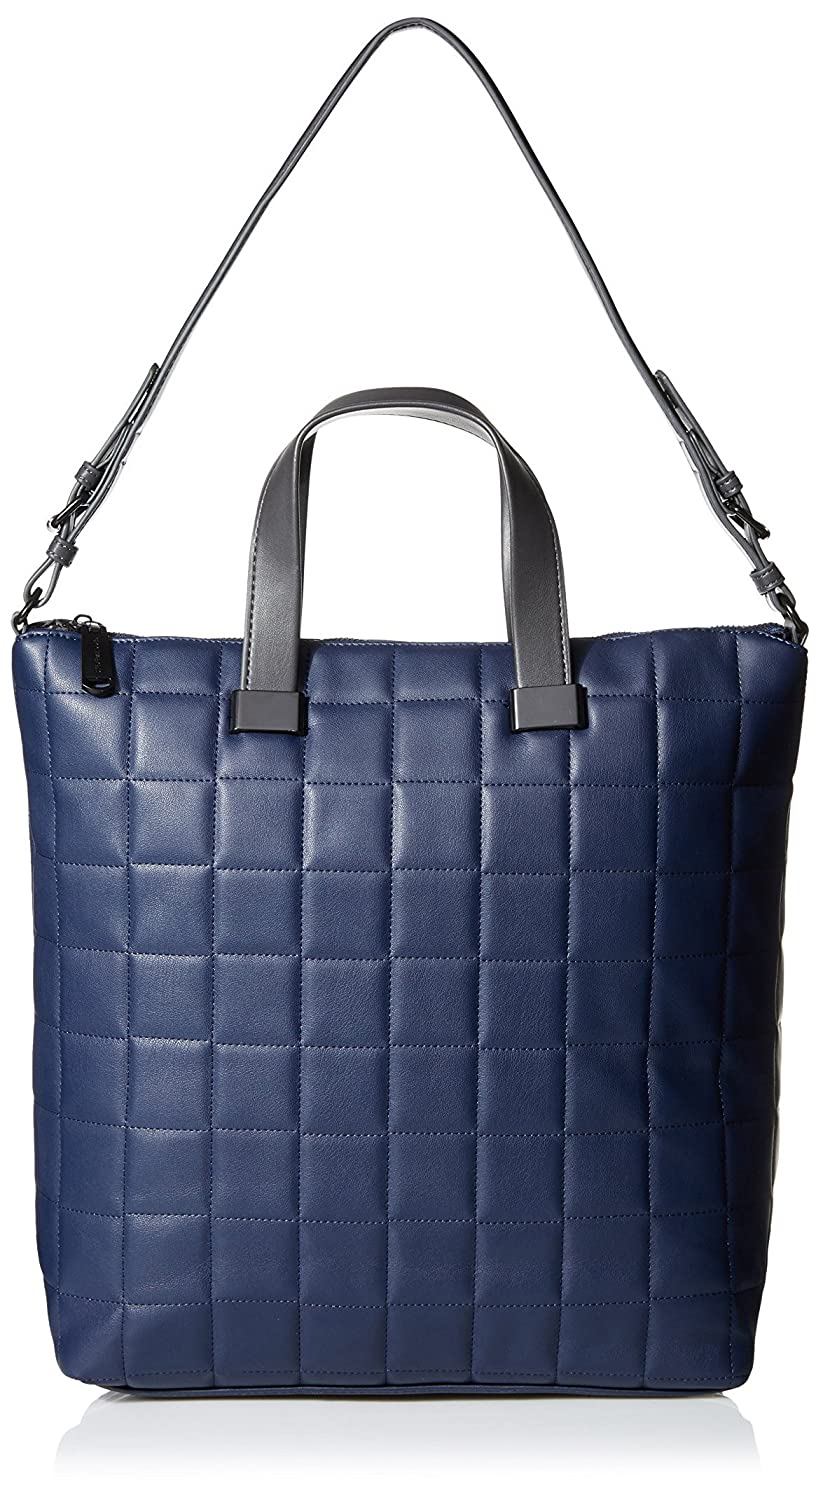 5f33b27319d4b Steve Madden Women's Bree Quilted Tote, Navy